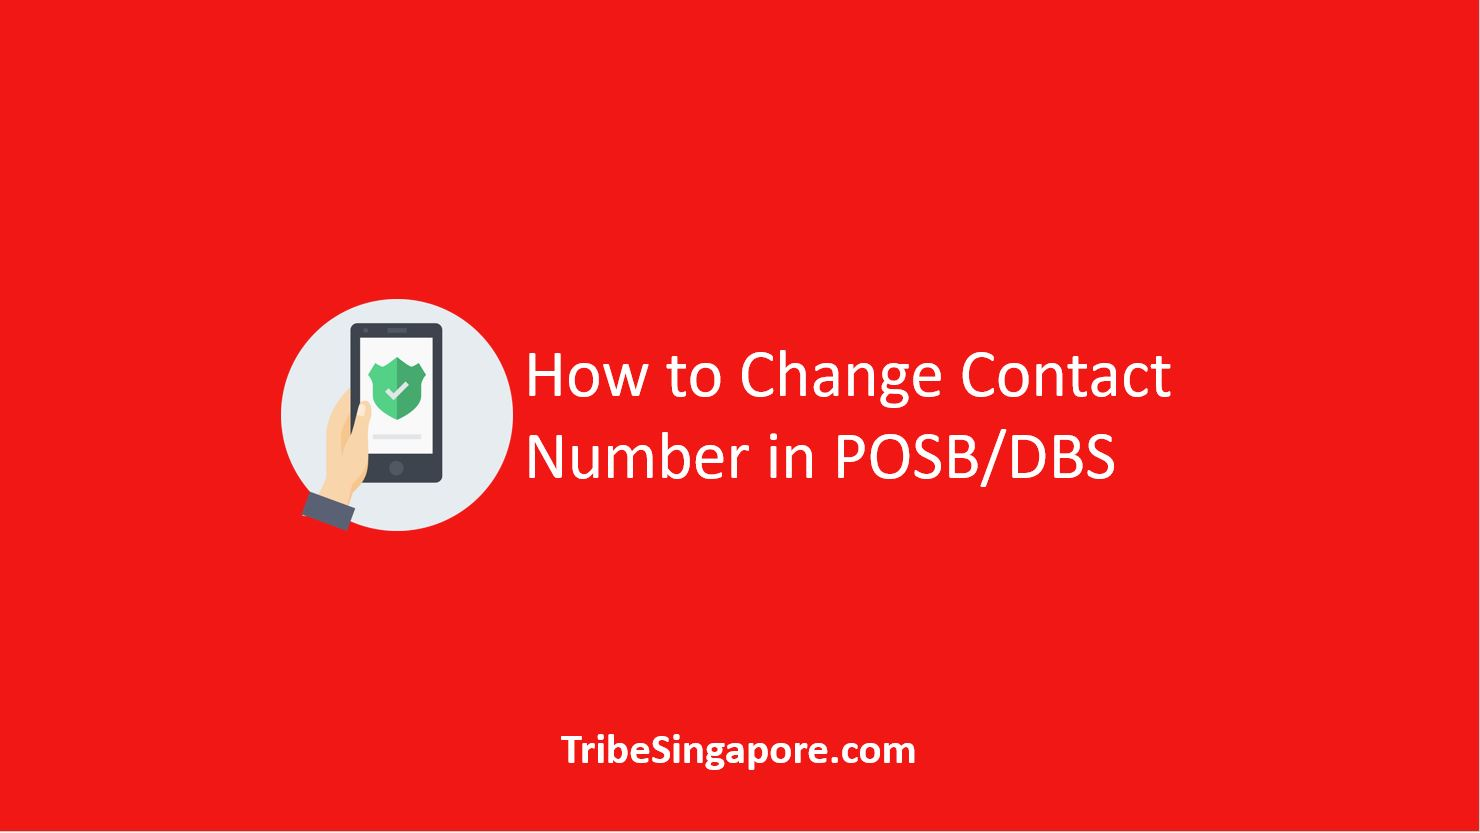 How to Change Contact Number in POSB/DBS